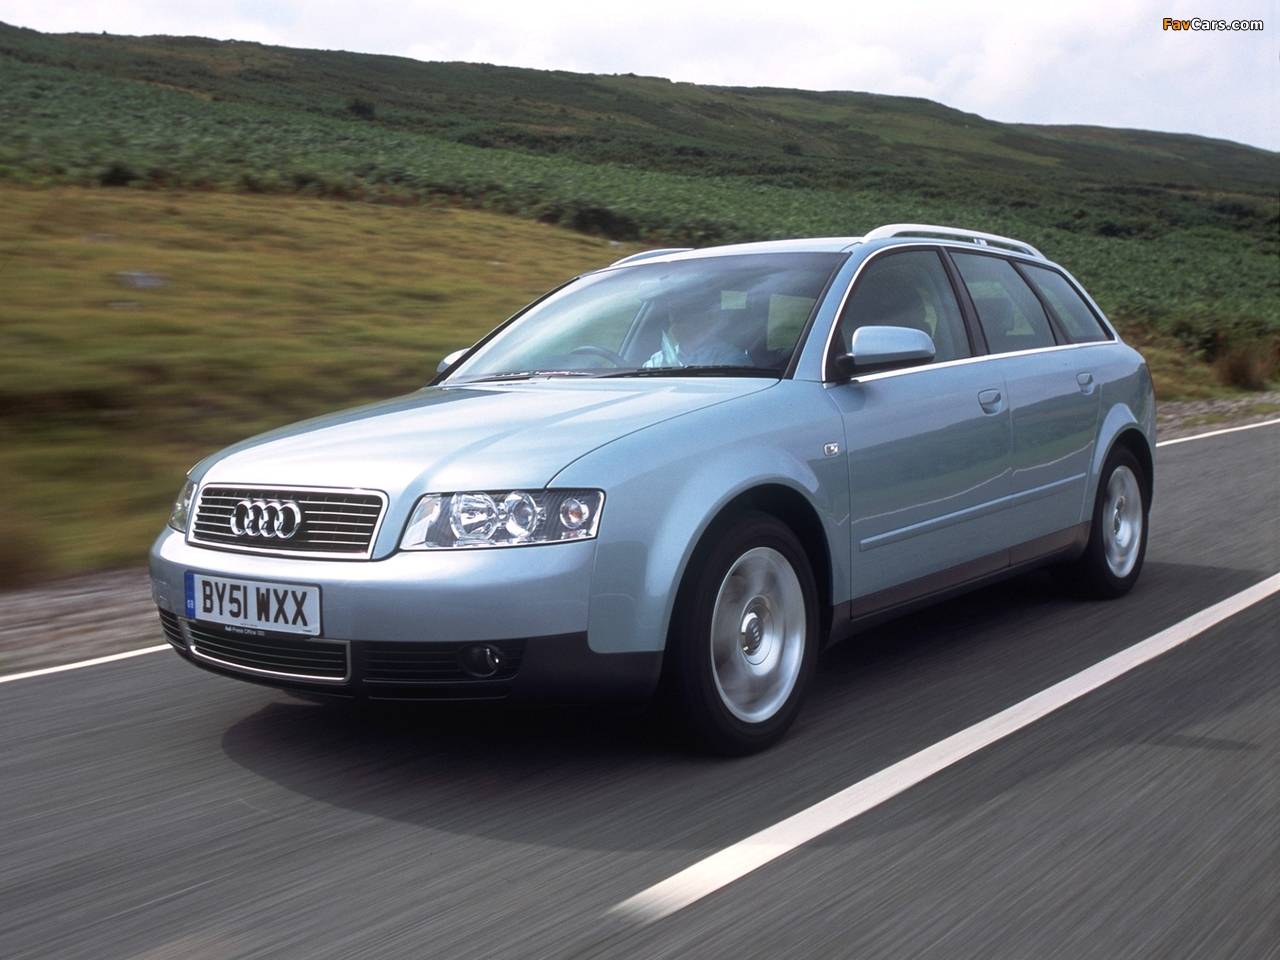 2004 Audi A4 Avant 2 0 related infomation,specifications